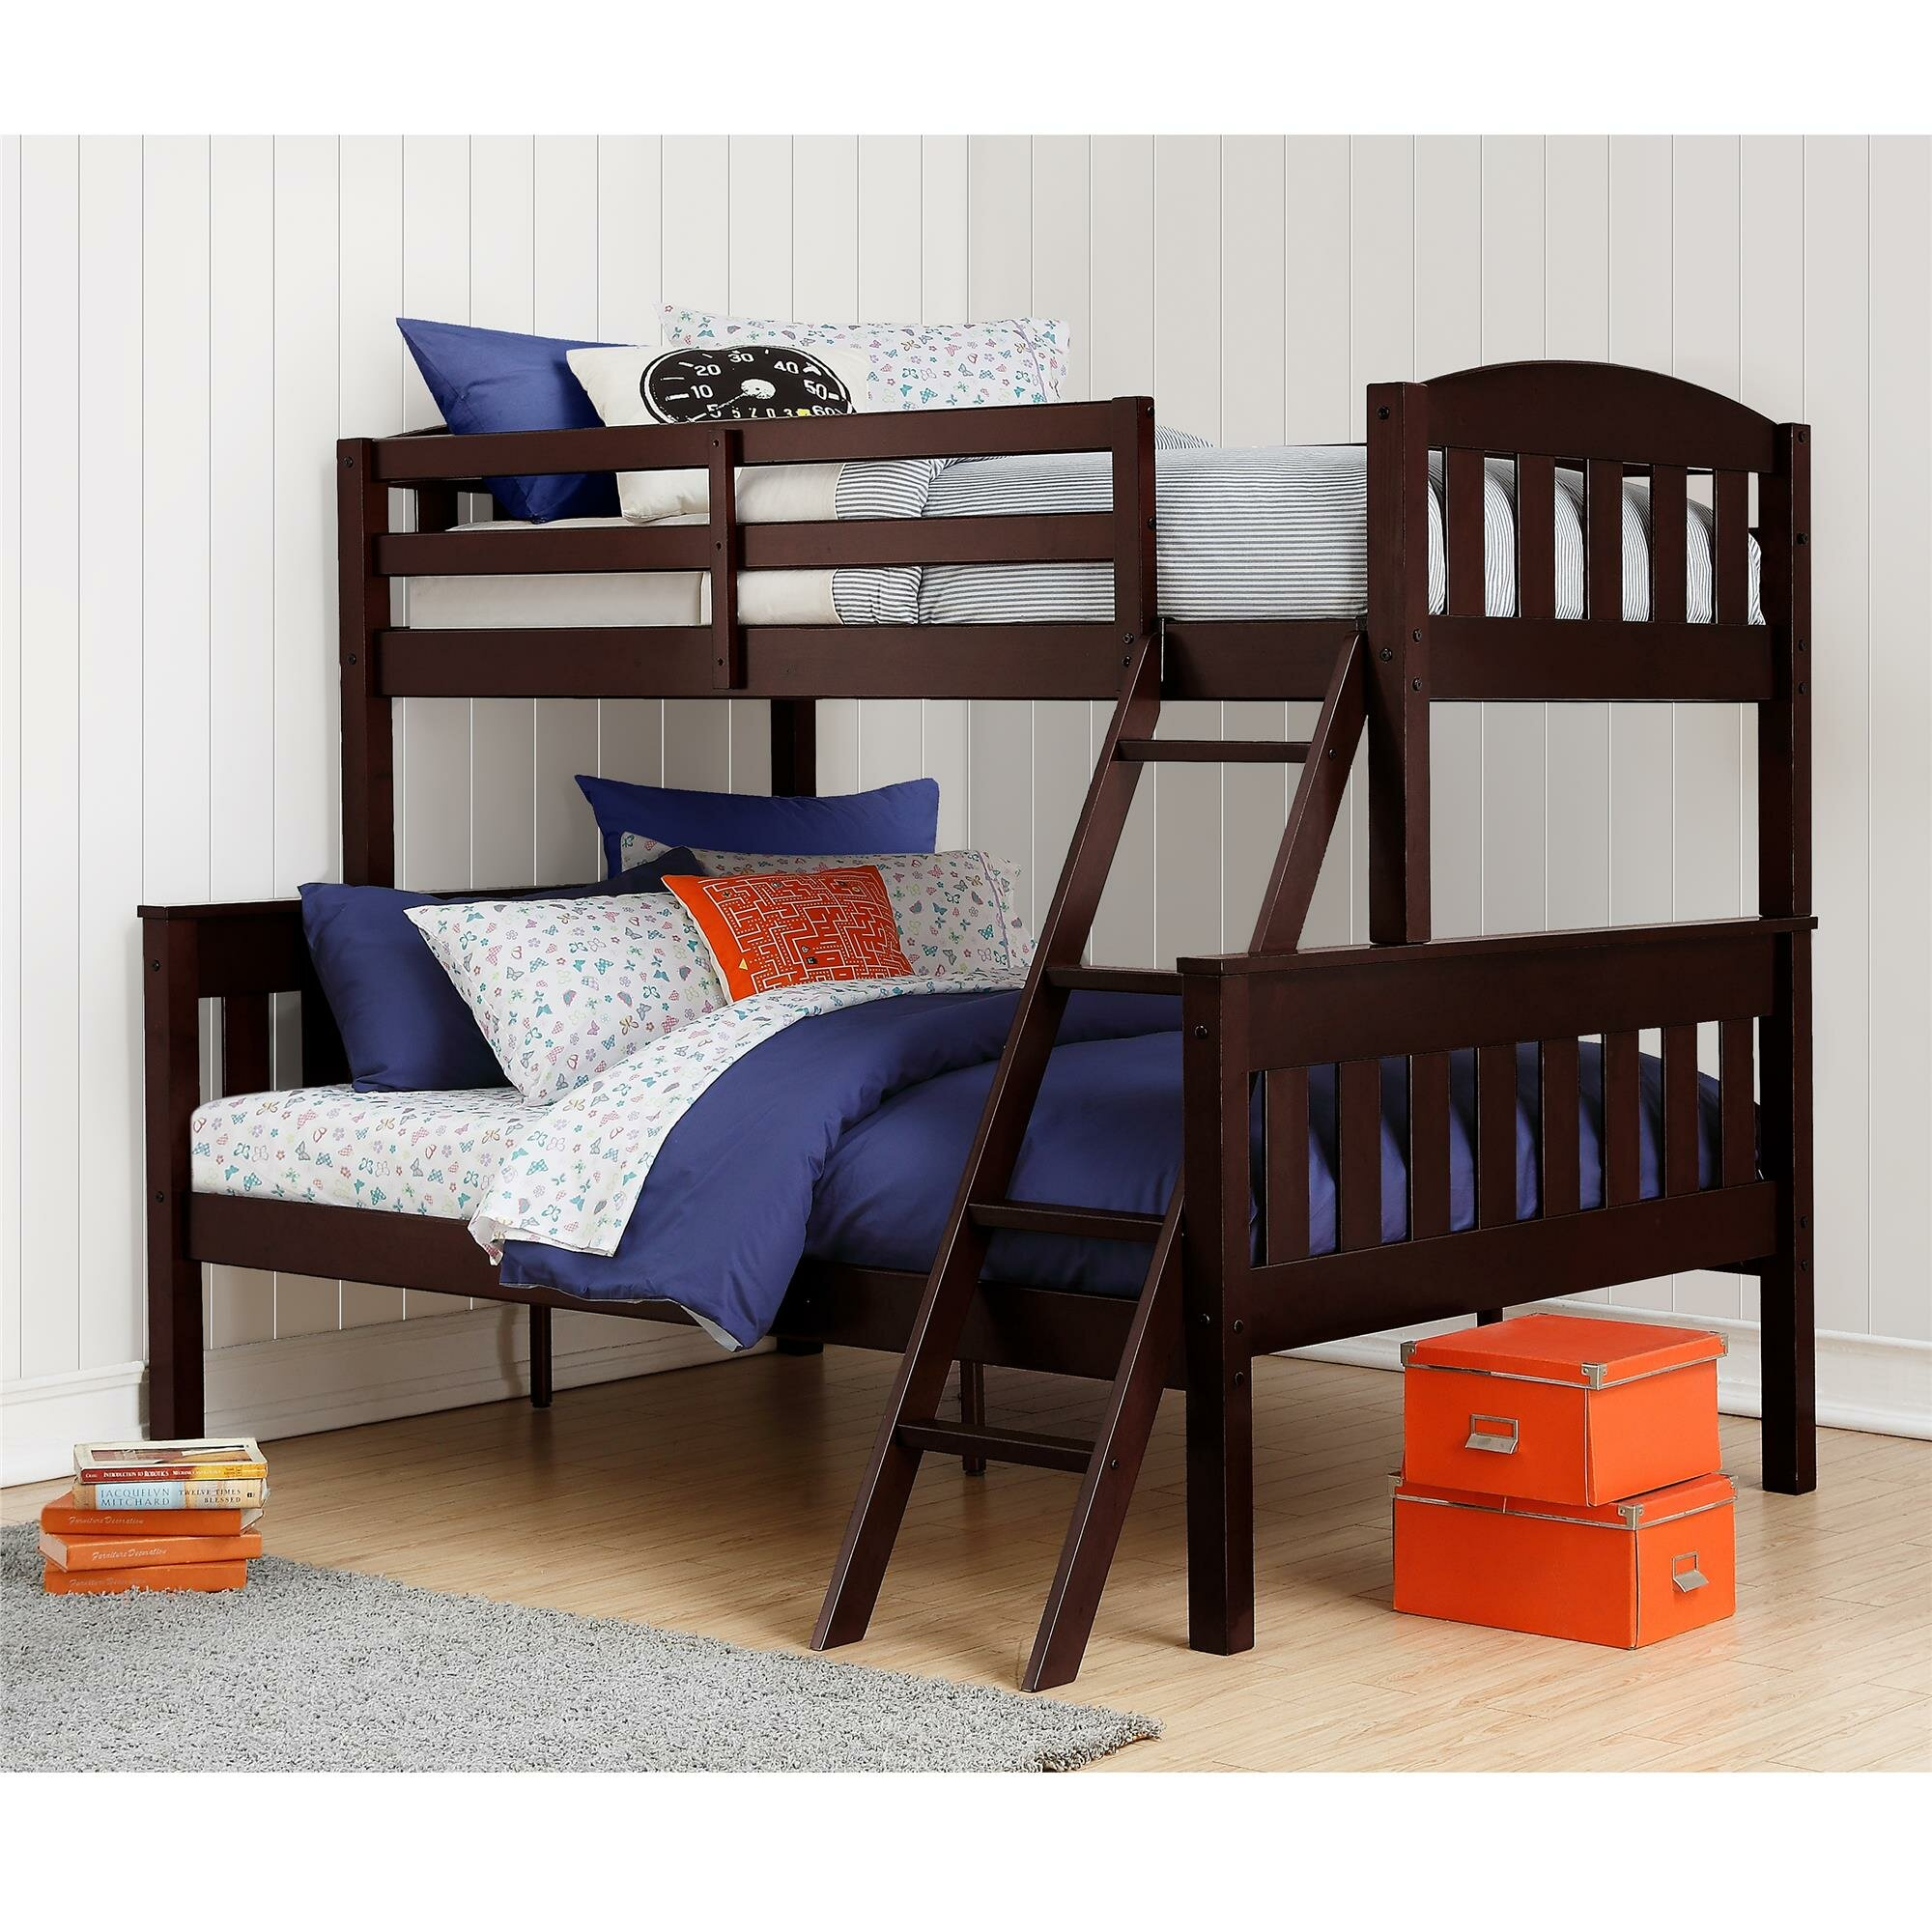 zoomie kids immanuel twin over full bunk bed reviews 11050 | zoomie kids immanuel twin over full bunk bed